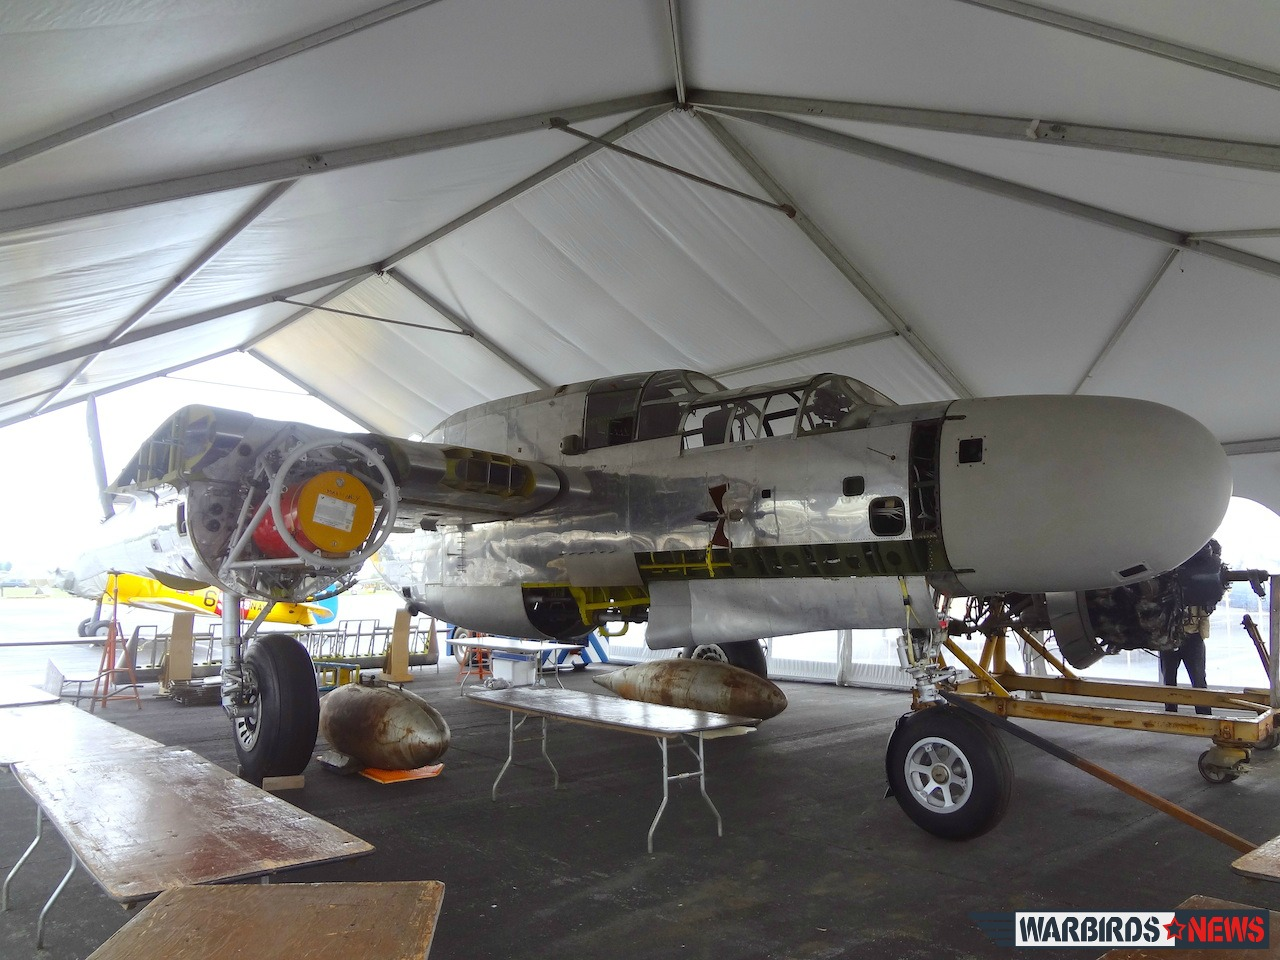 The P-61 Black Widow how it looked like in June 2103. Accordingly to the museum's director Russ Strine the aircraft looks the same now as they are working on the internal systems.